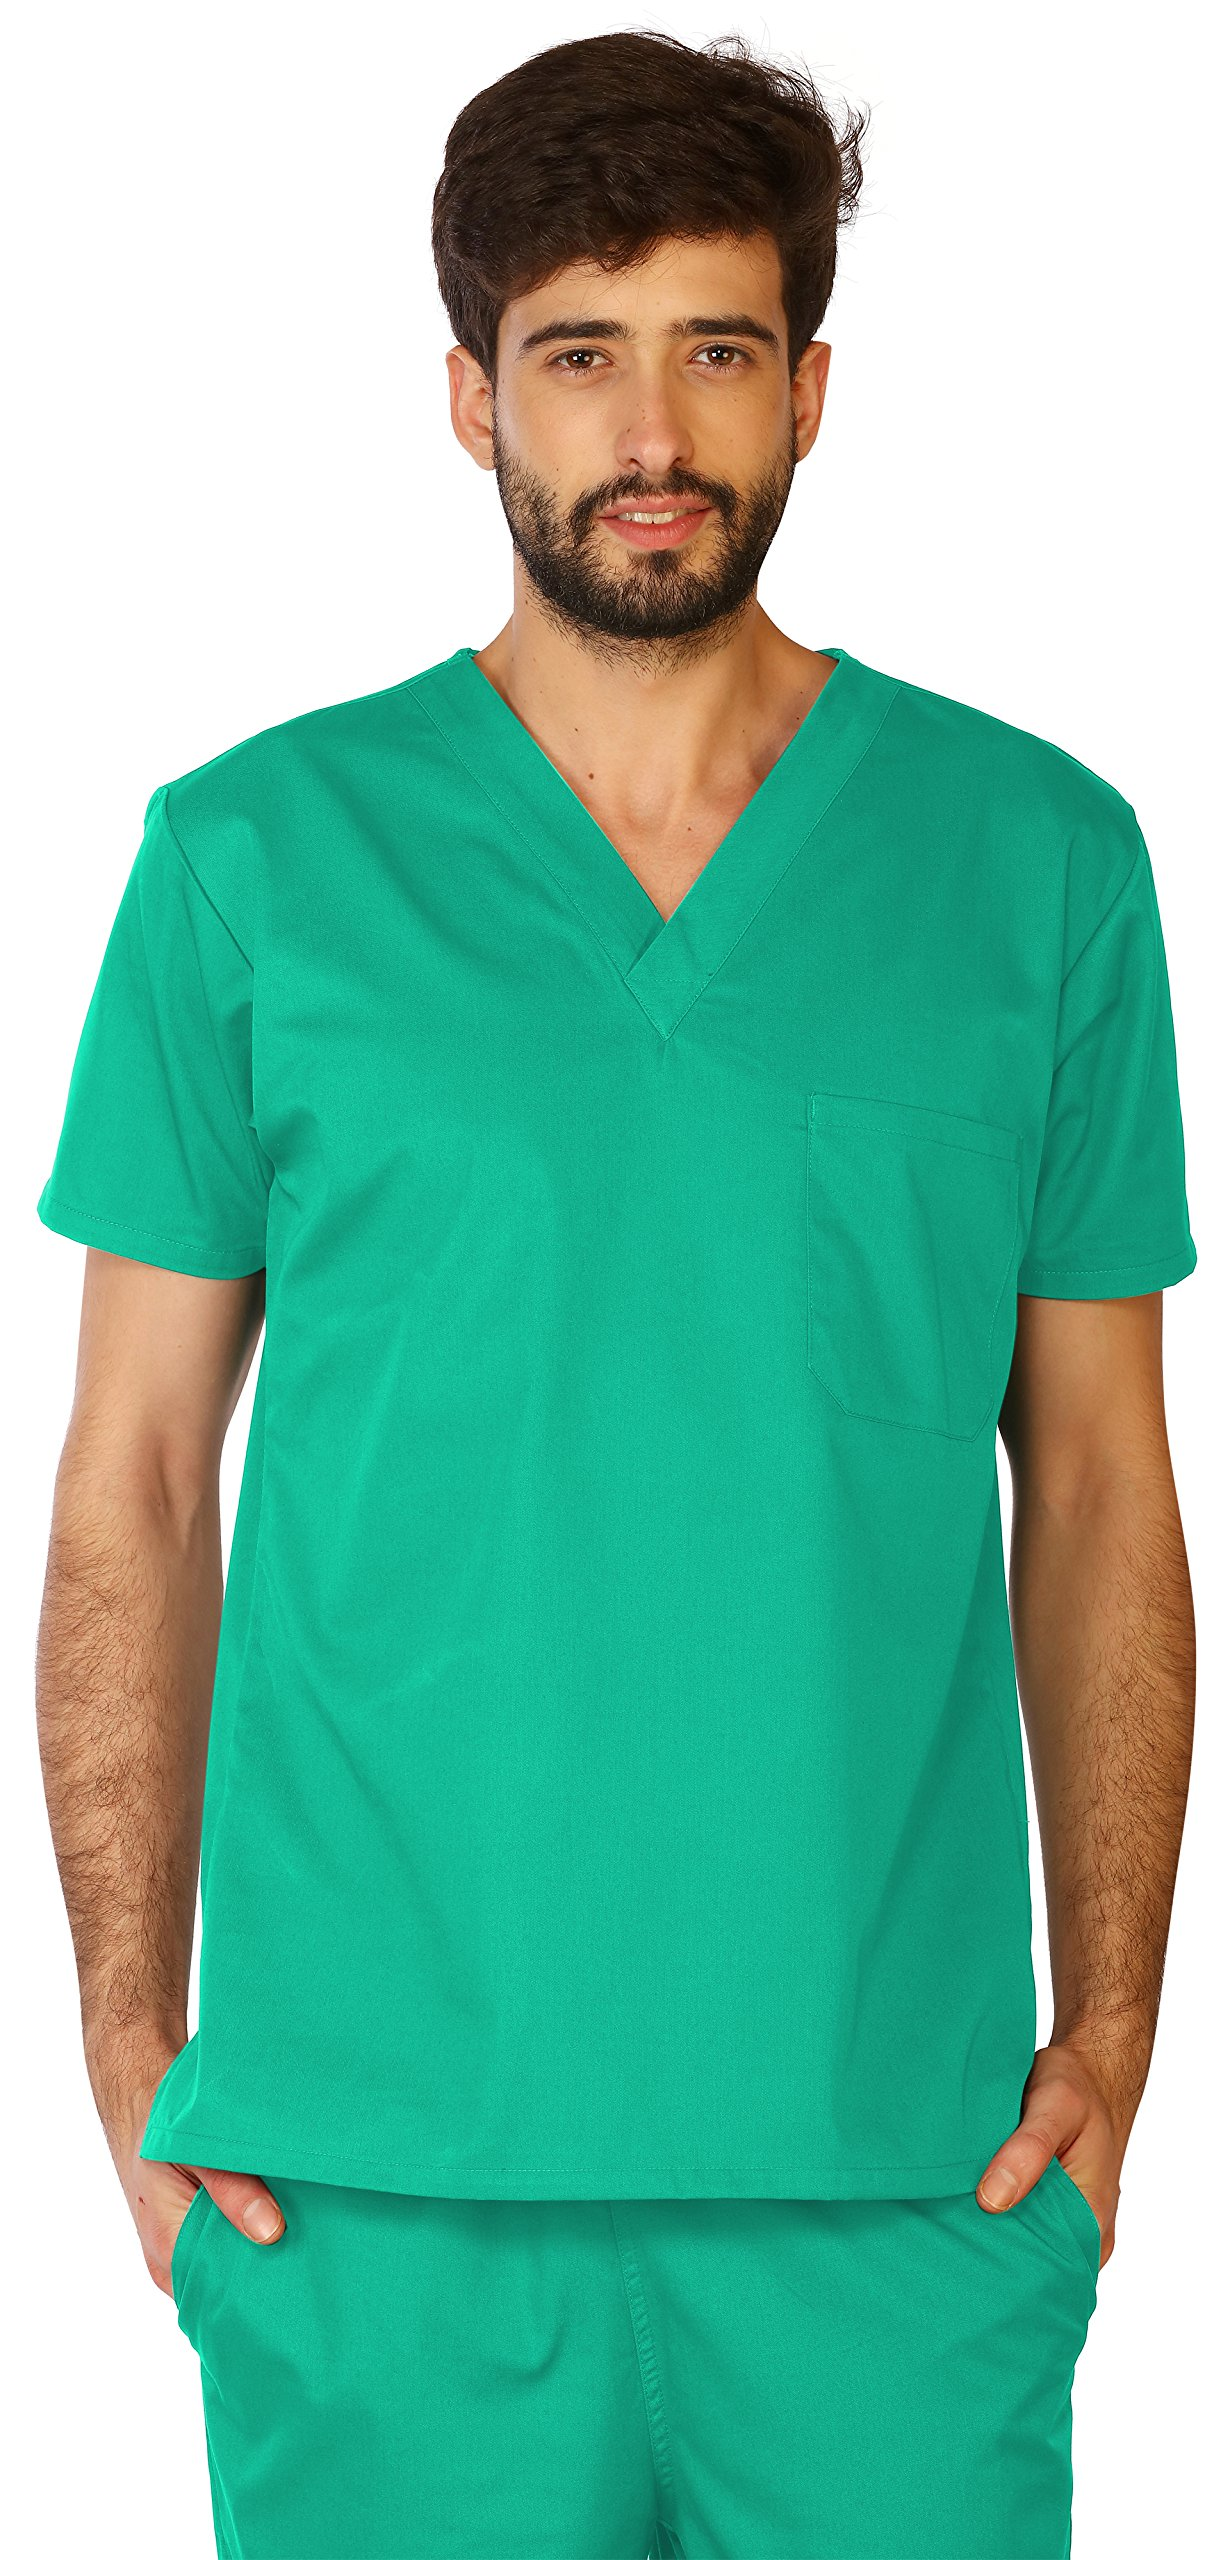 LifeThreads Classic Men's Scrub Top - Antimicrobial - Fluid Resistant - Jade Green - XXX-Large by LifeThreads